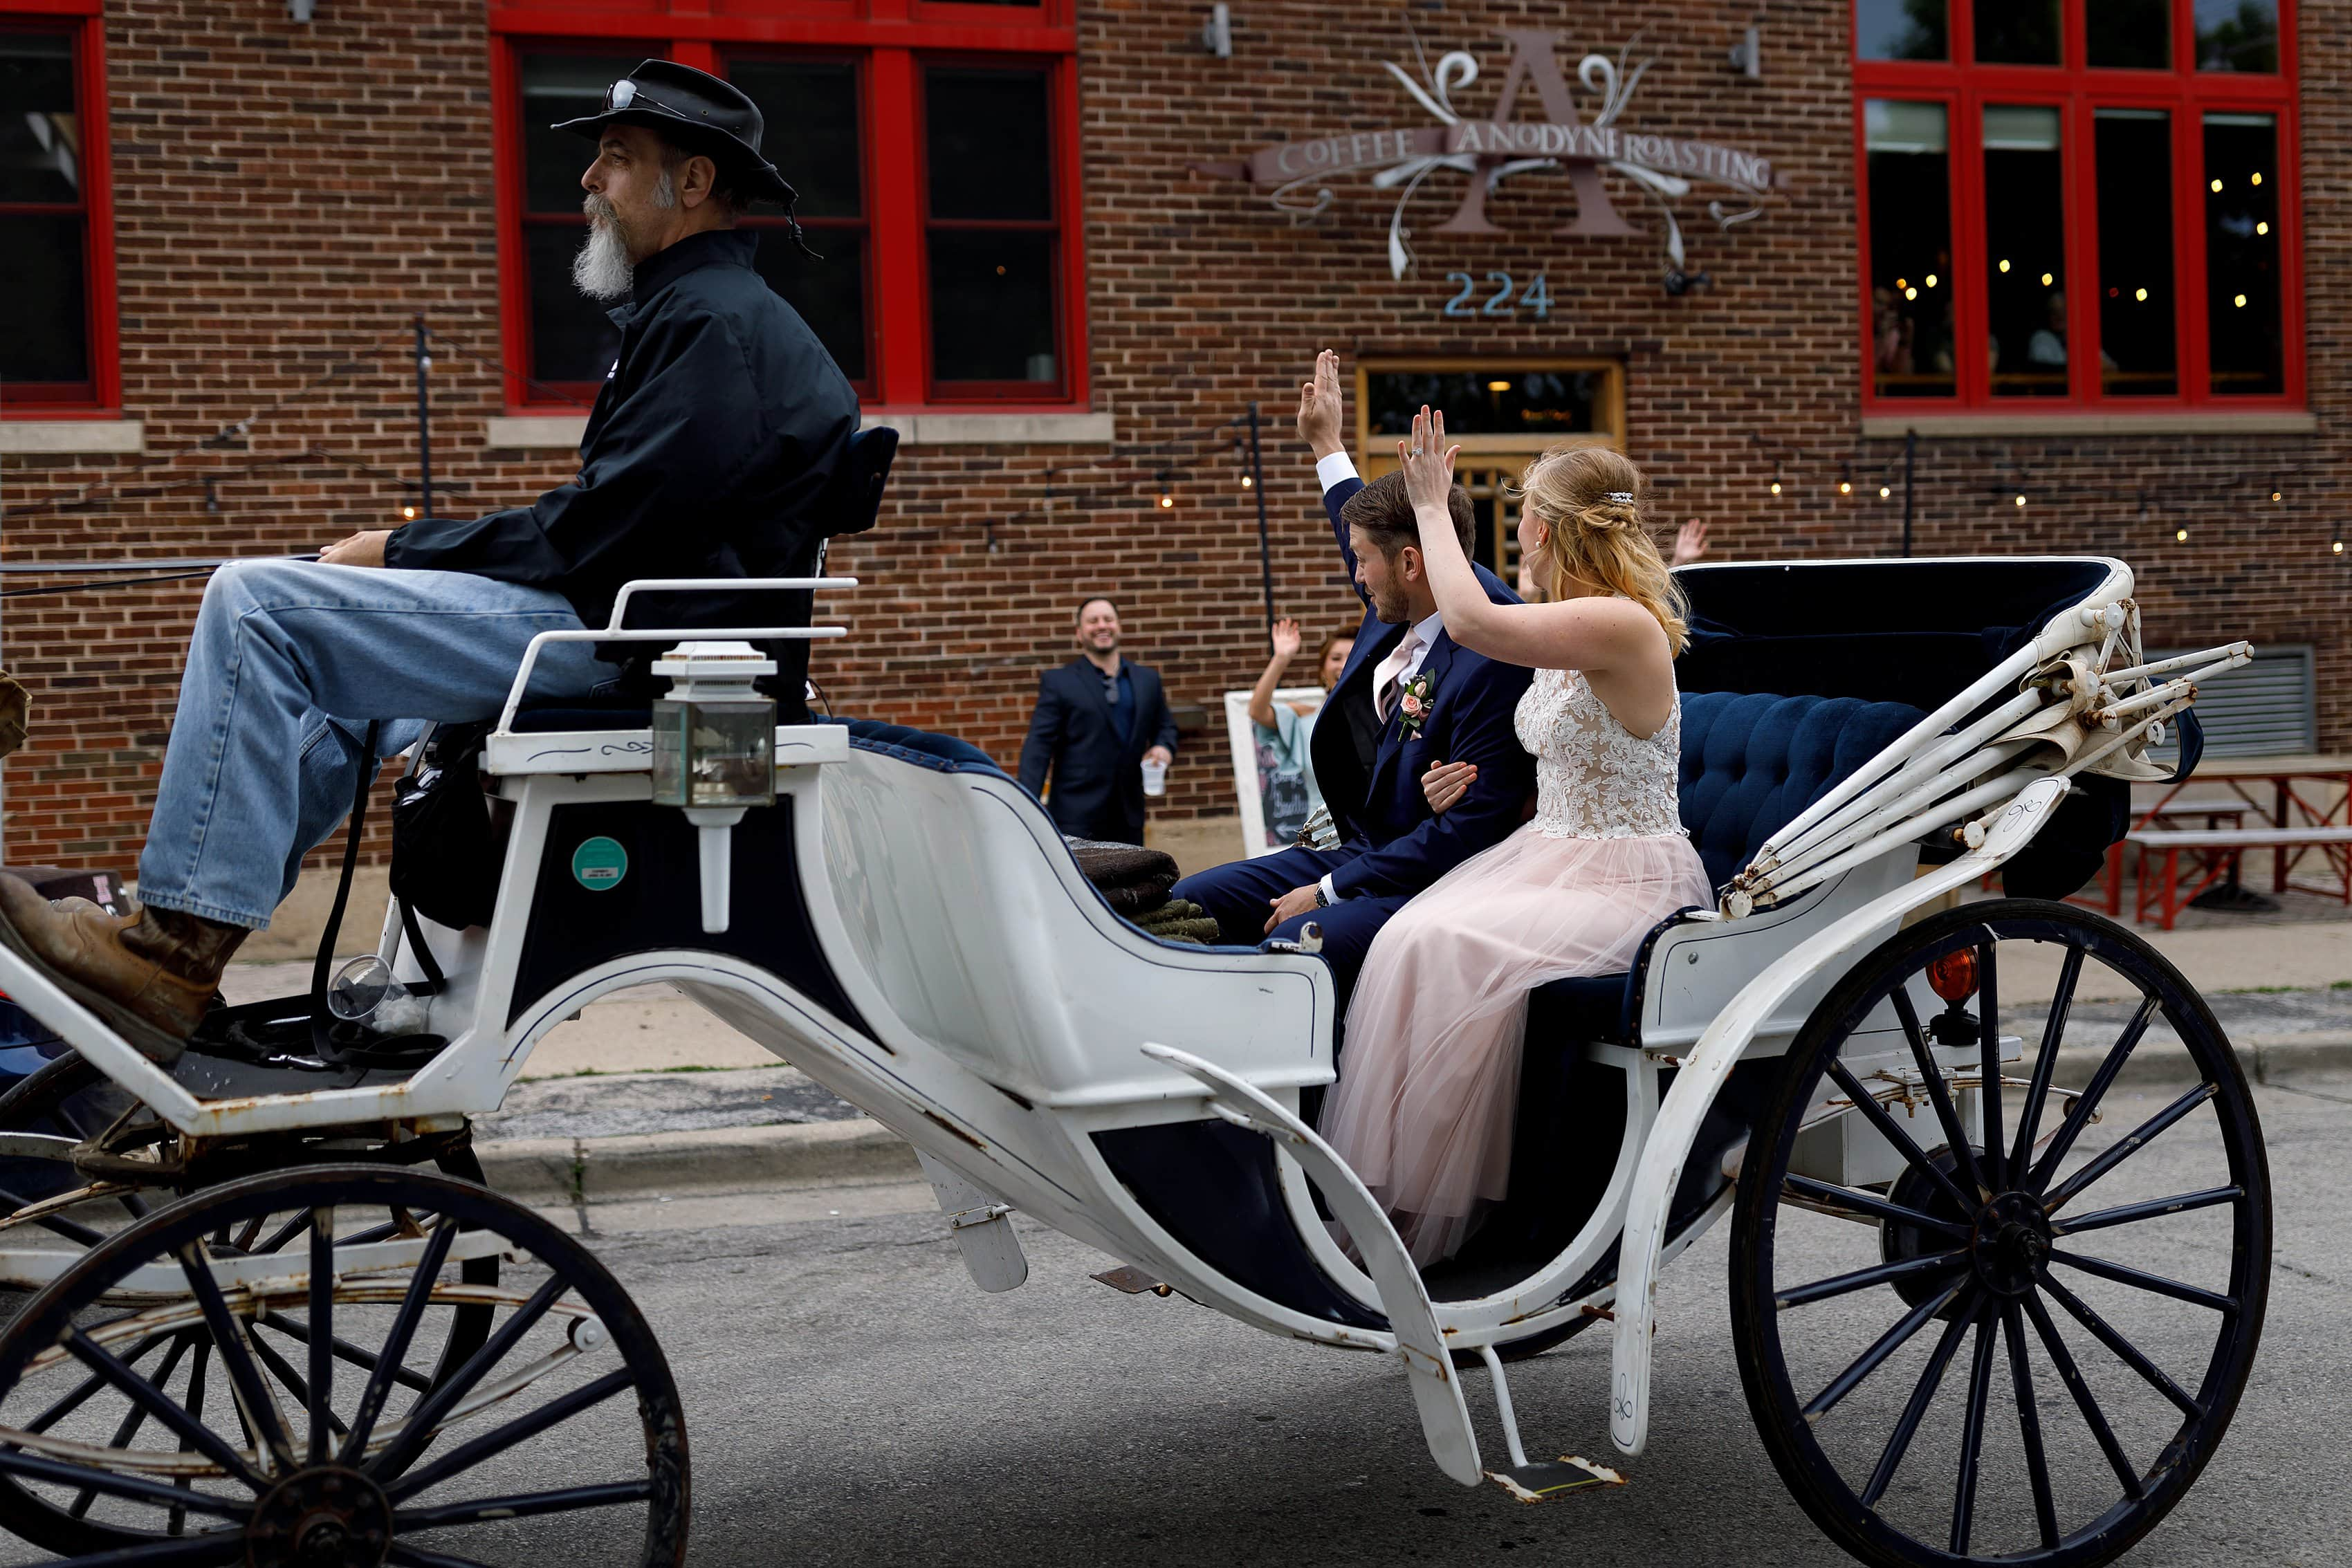 Couple waves to guests outside Anodyne coffee roasting co. in Milwaukee Wisconsin after their wedding ceremony